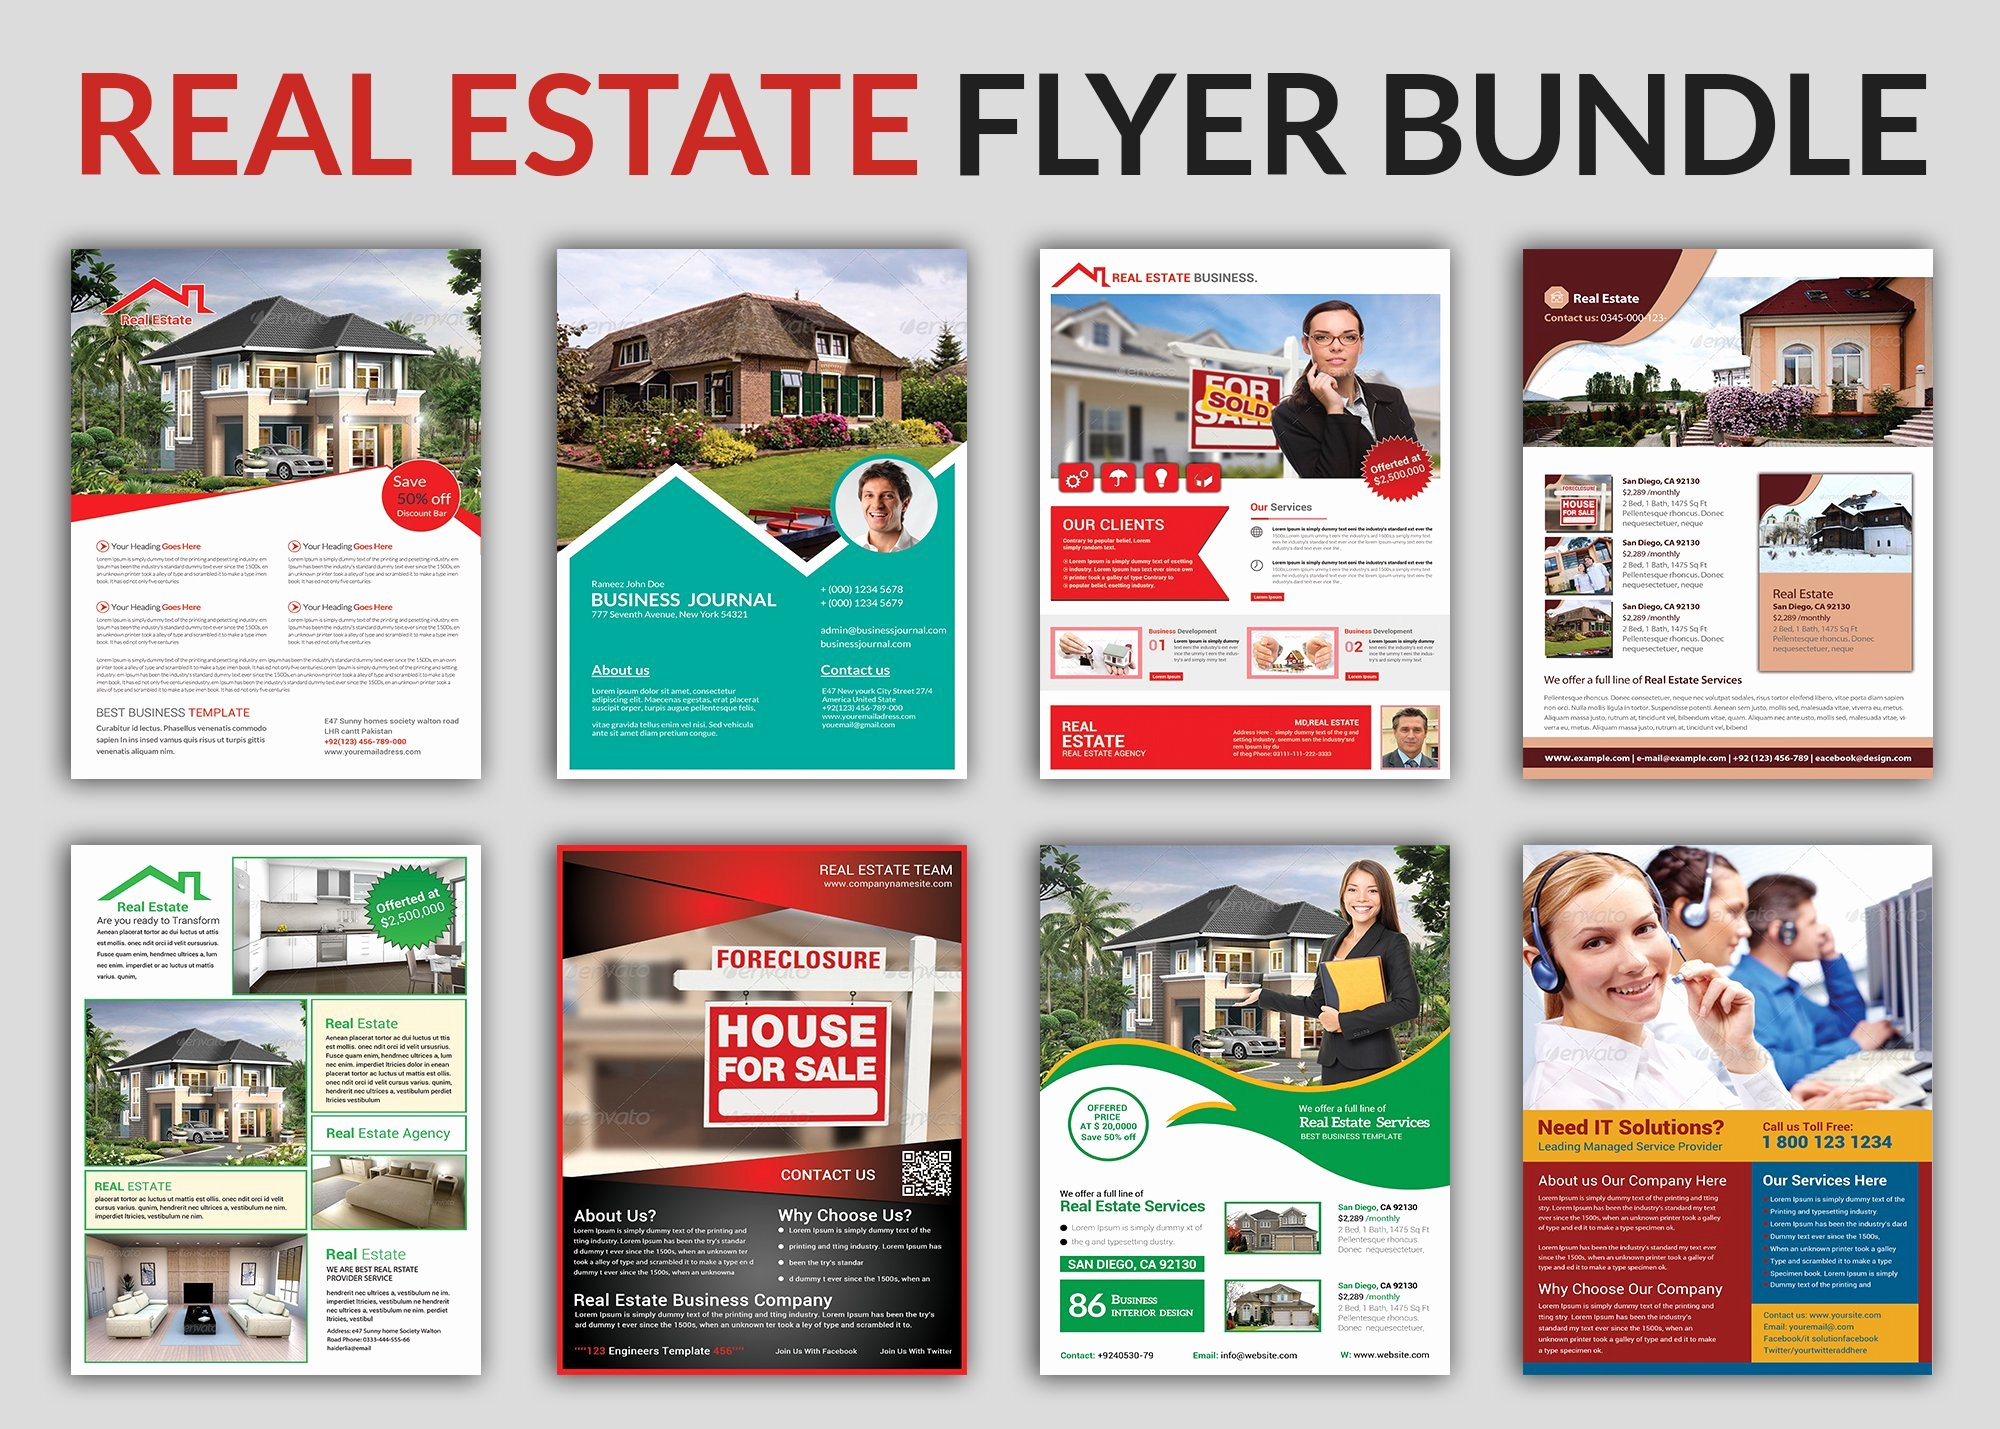 Real Estate Brochure Template Fresh Real Estate Flyer Bundle Templates Flyer Templates